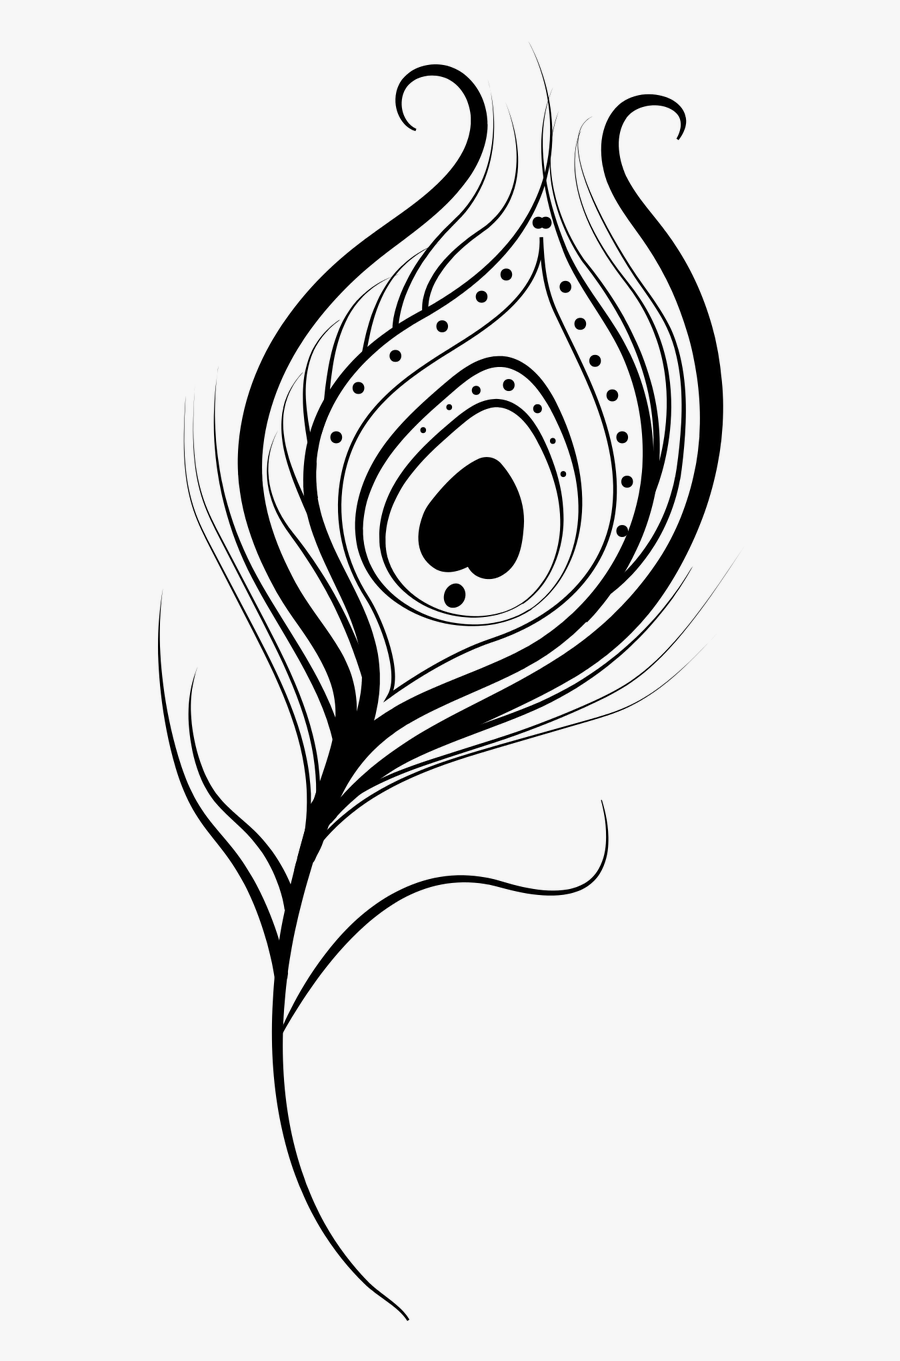 Feather Peacock Vector Isolated Png Image - Peacock Feather Png Black And White, Transparent Clipart